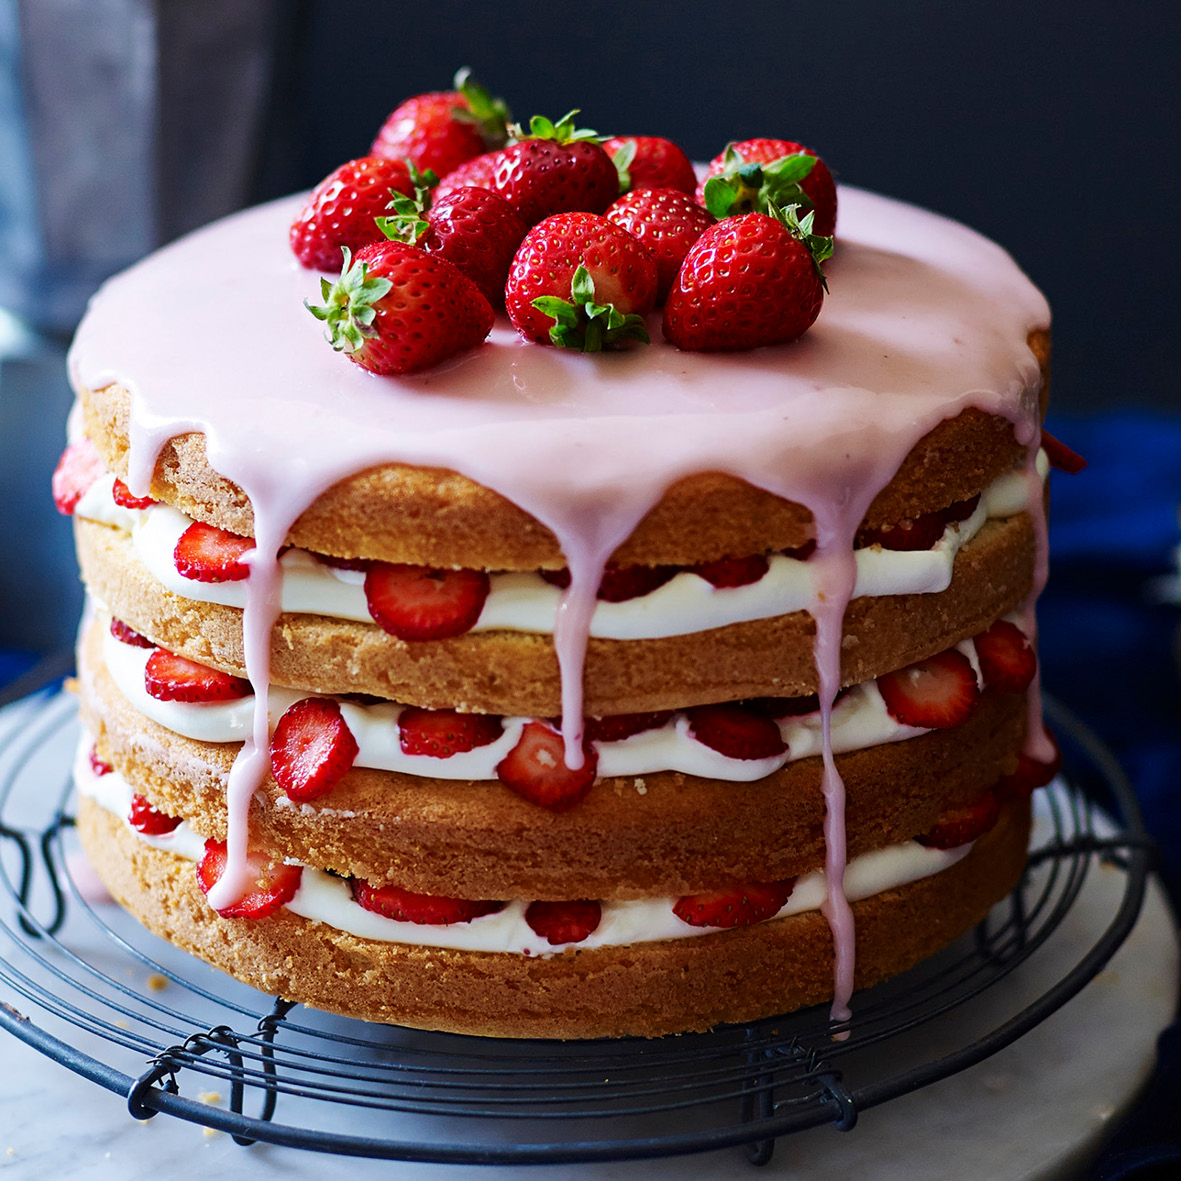 strawberry_mascarpone_cake.jpg